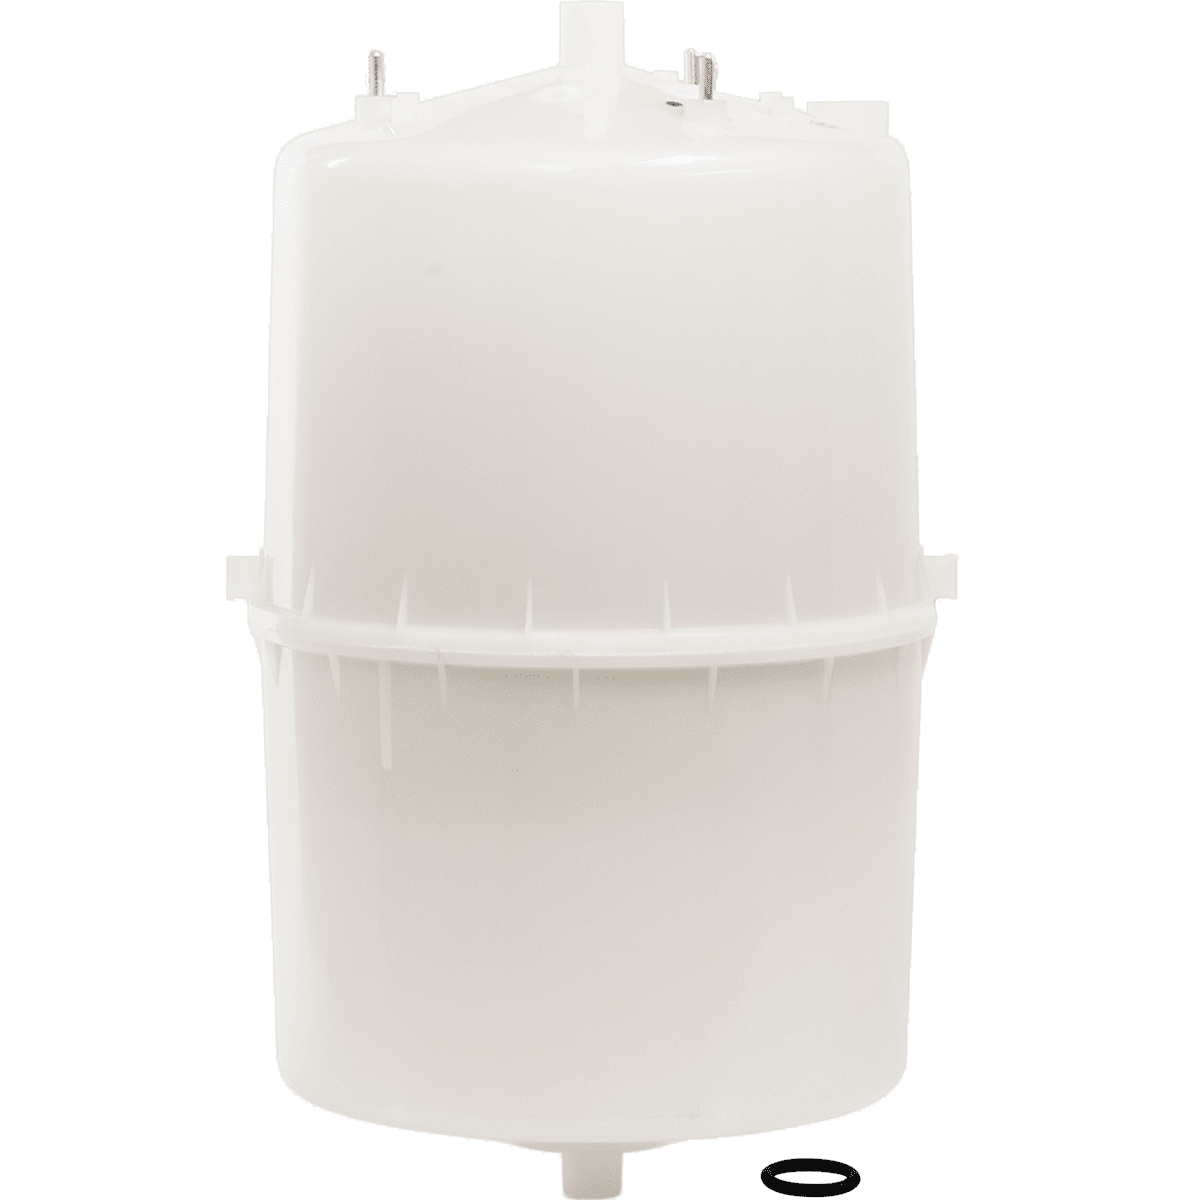 Aprilaire 411a Steam Humidifier Cylinder (fits Nortec® 411)